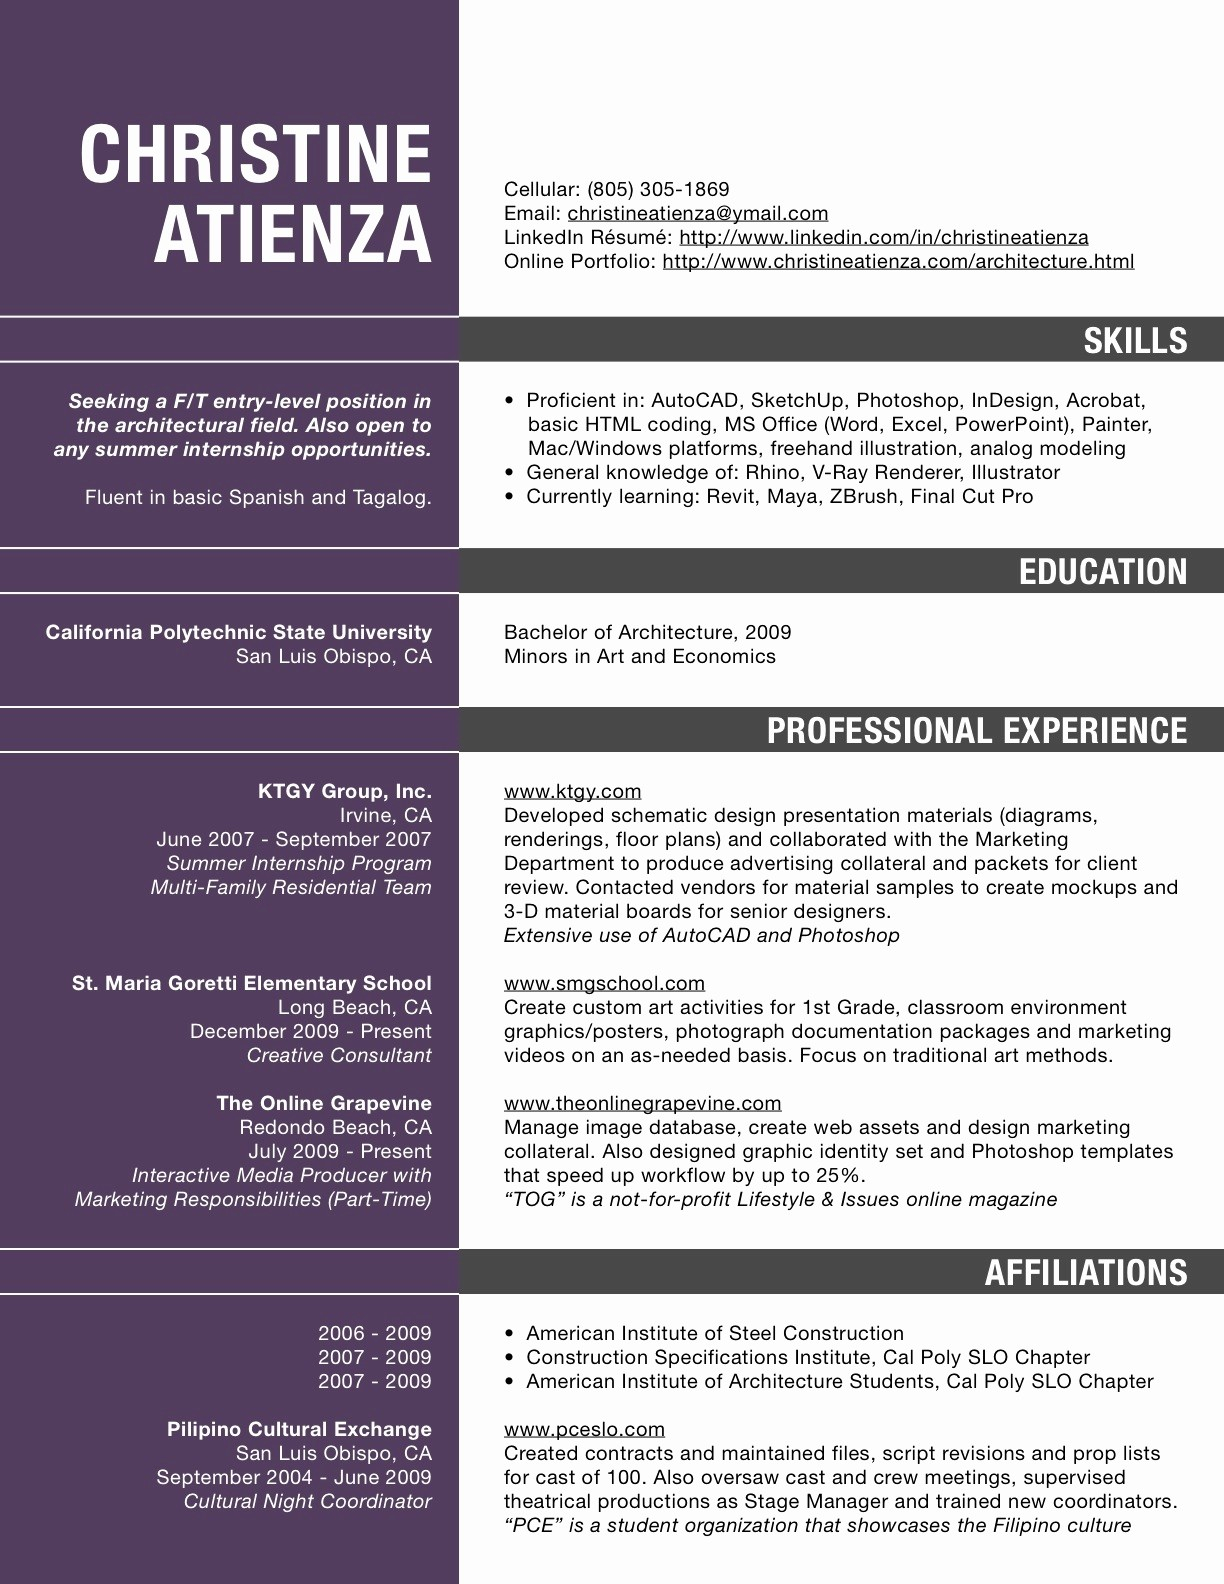 Optimal Resume Wyotech - Wyotech Optimal Resume Hirnsturm